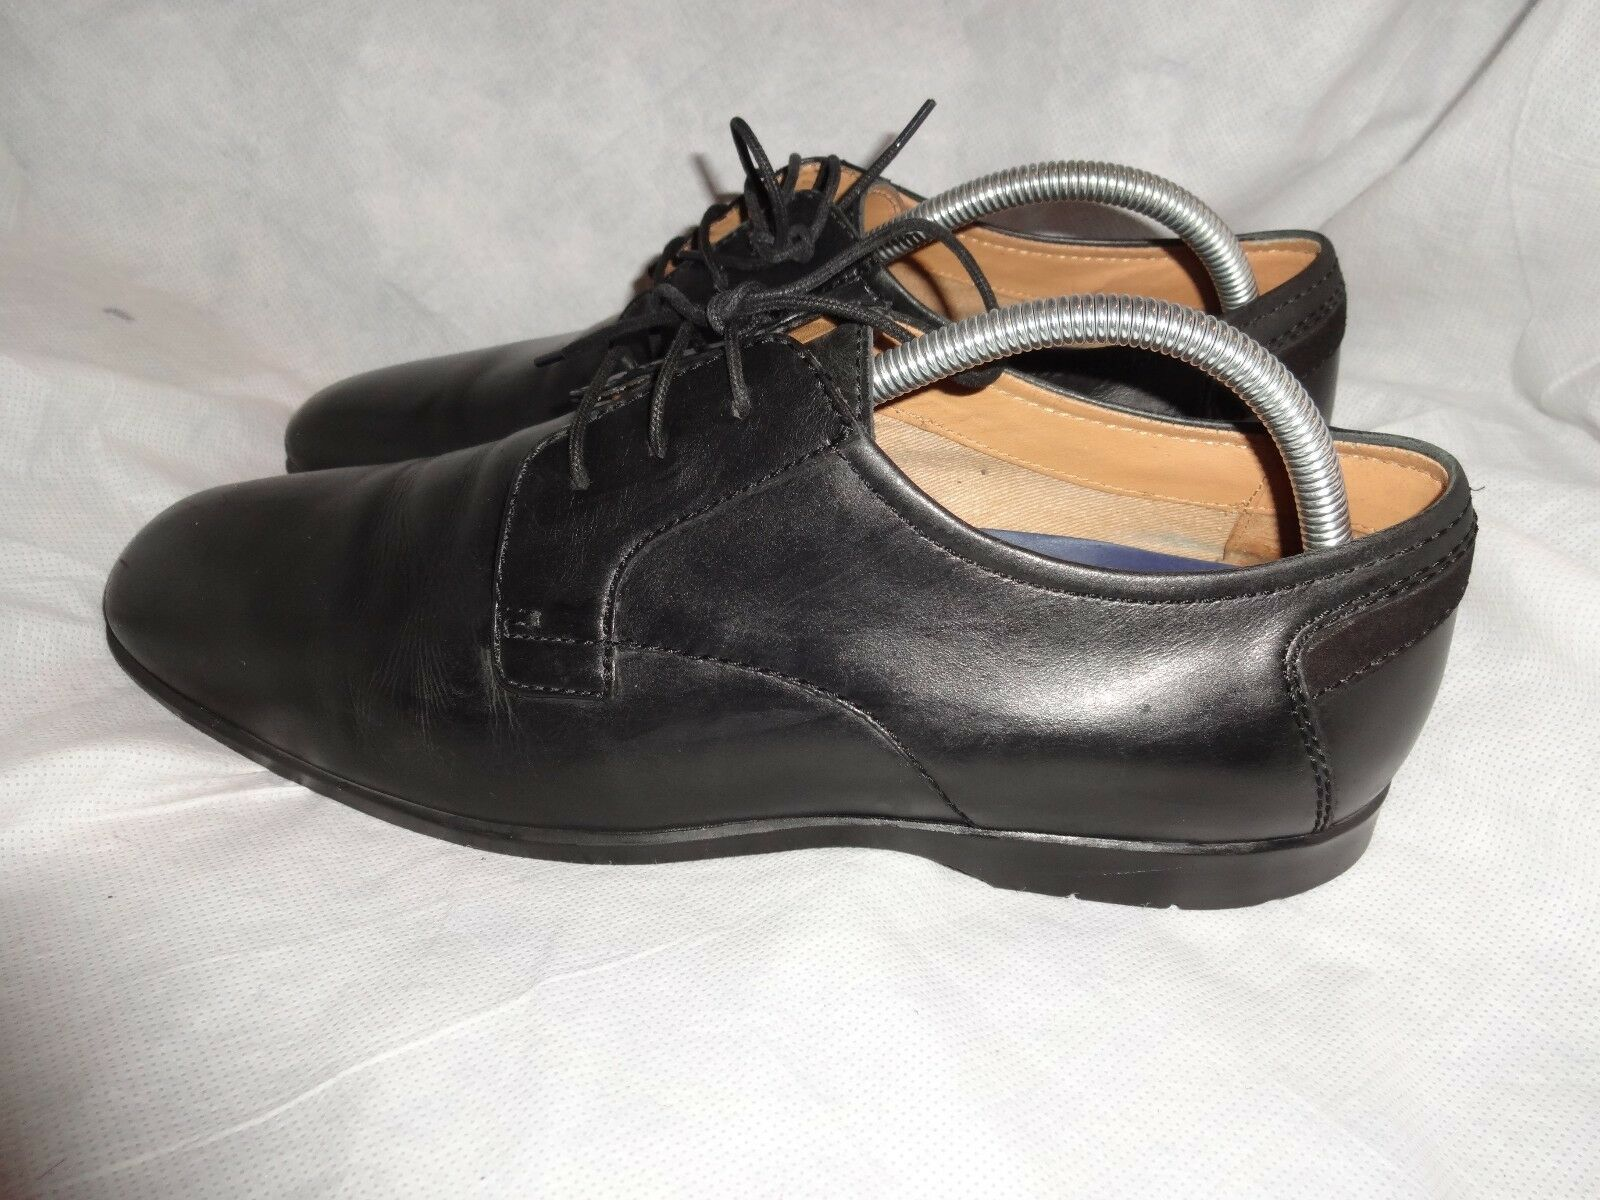 MARKS & SPENCER AIRFLEX MEN BLACK LEATHER LACE UP SHOE SIZE UK 9.5 EU 43.5 VGC